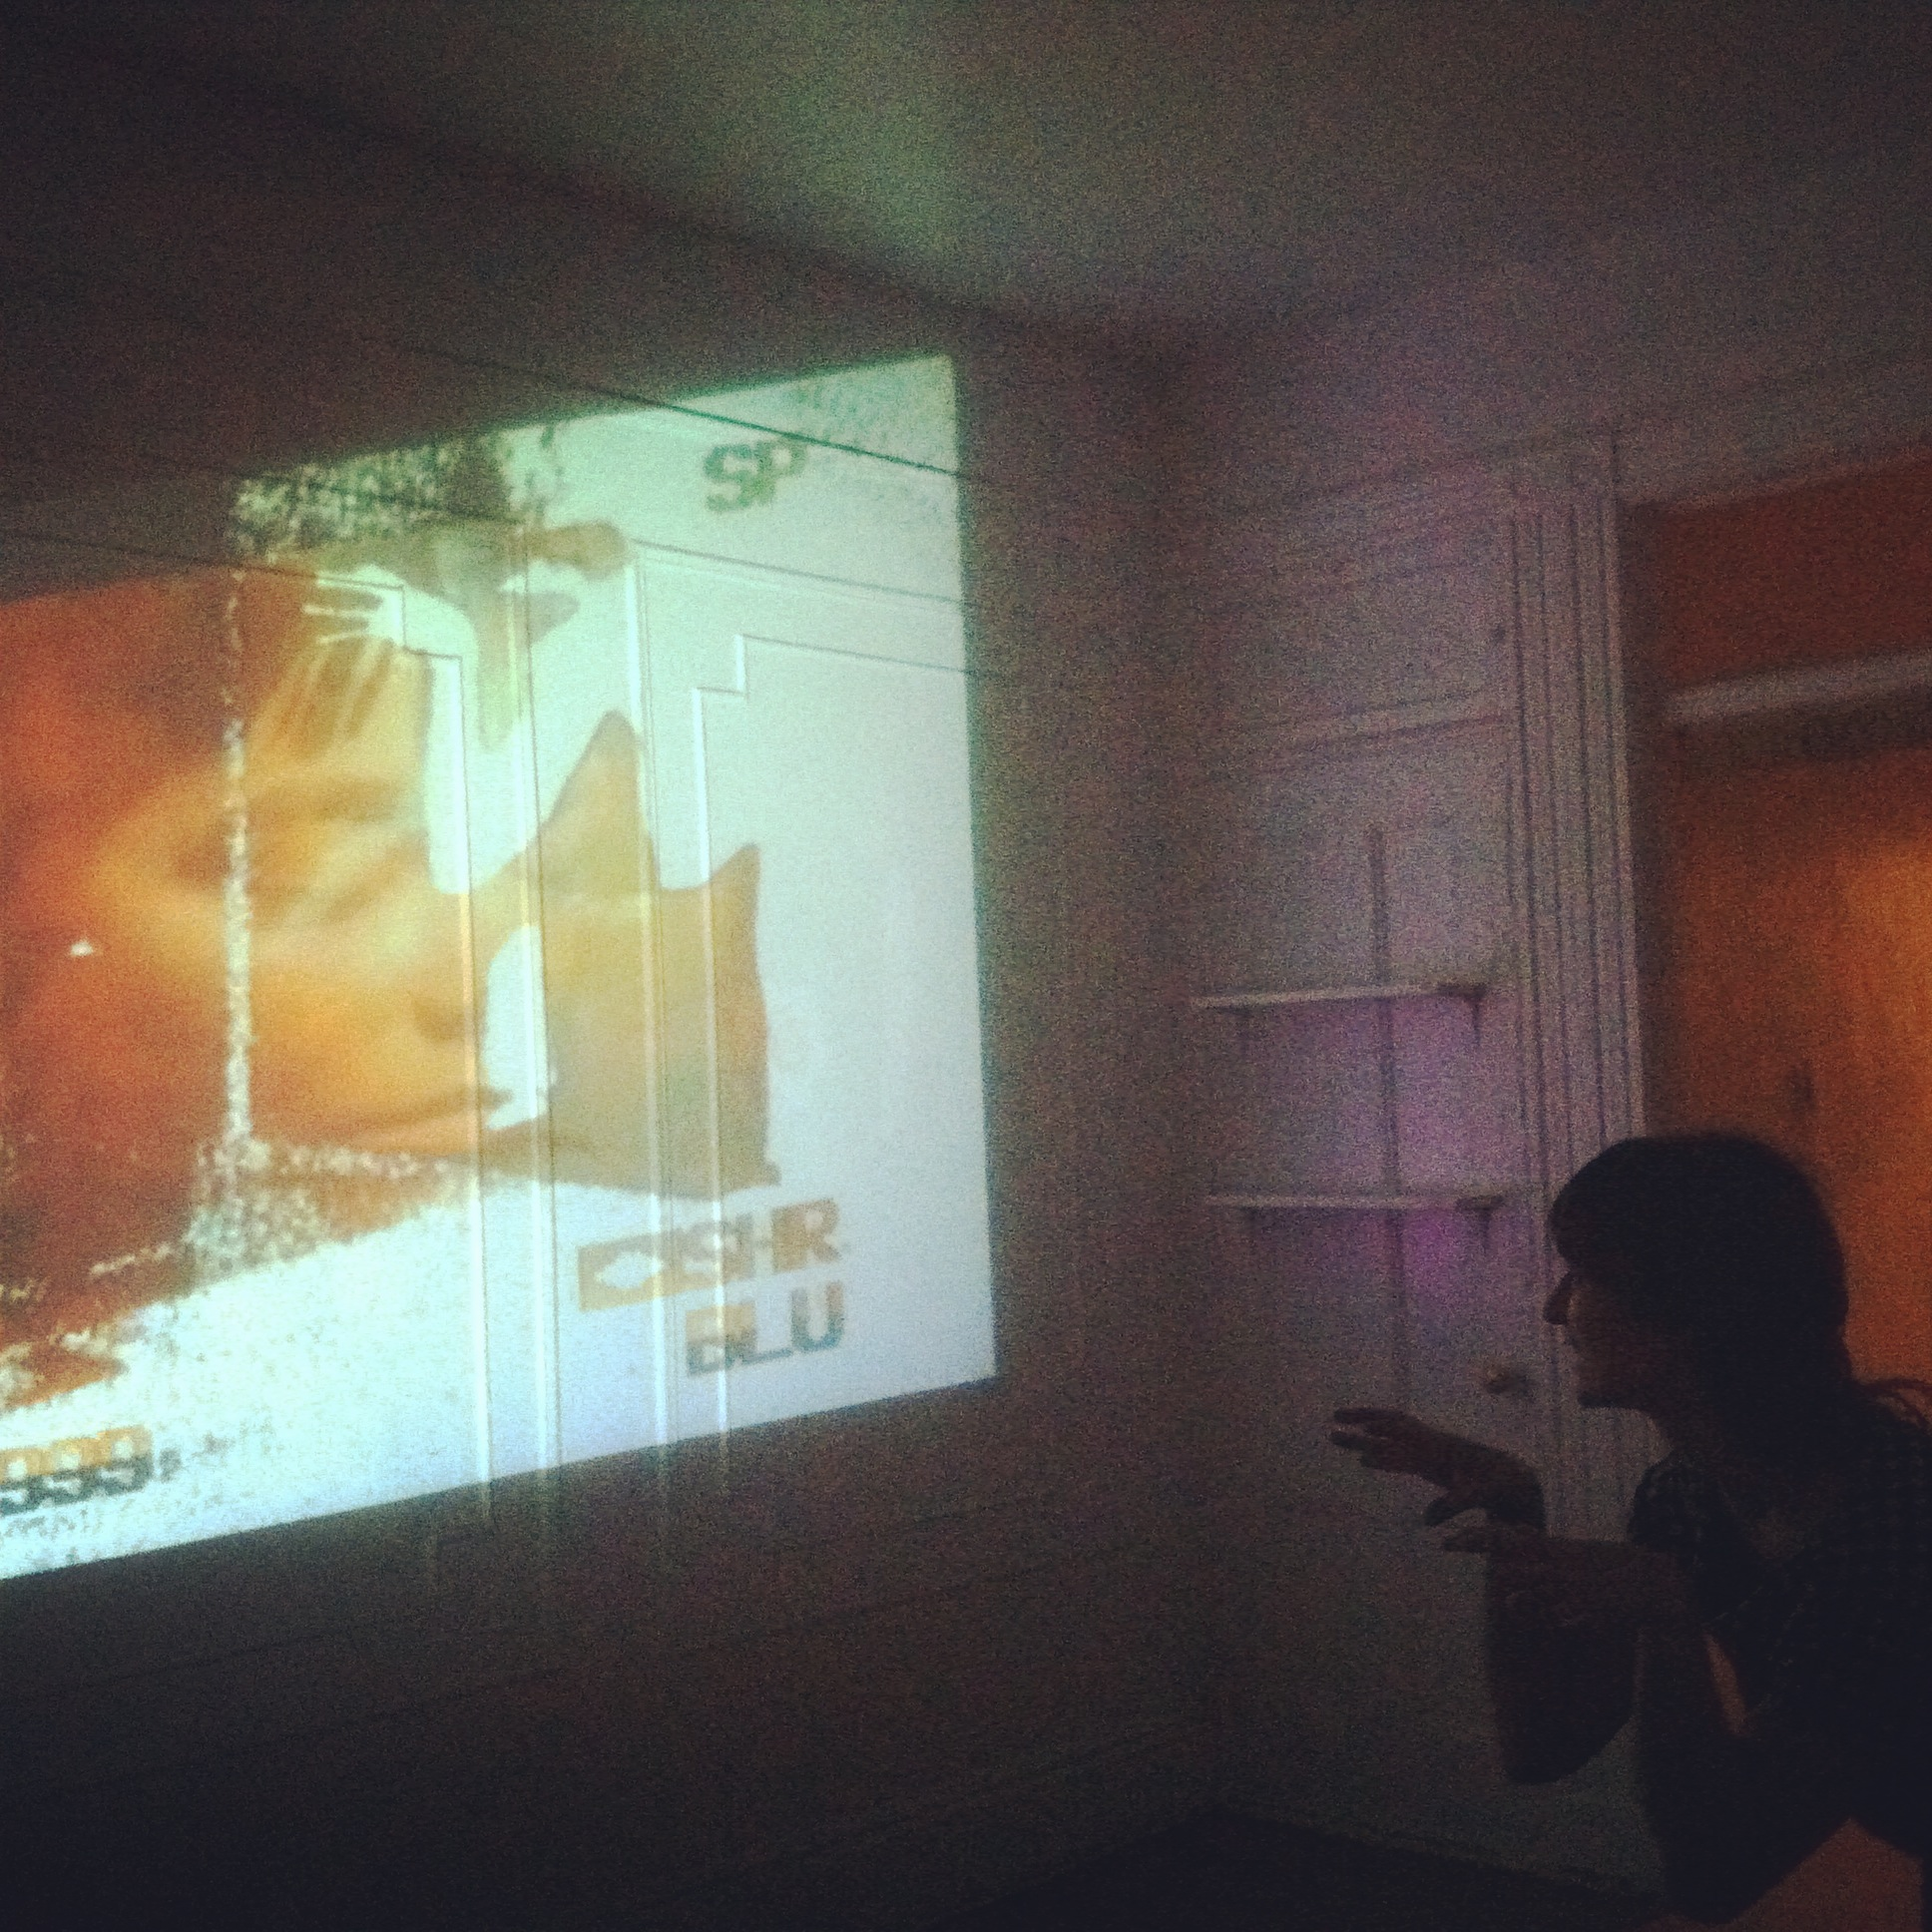 Live visuals for house party. Live camera allowed people to project their silhouettes onto wall projections.   House party // Brooklyn NY // Dec 2014